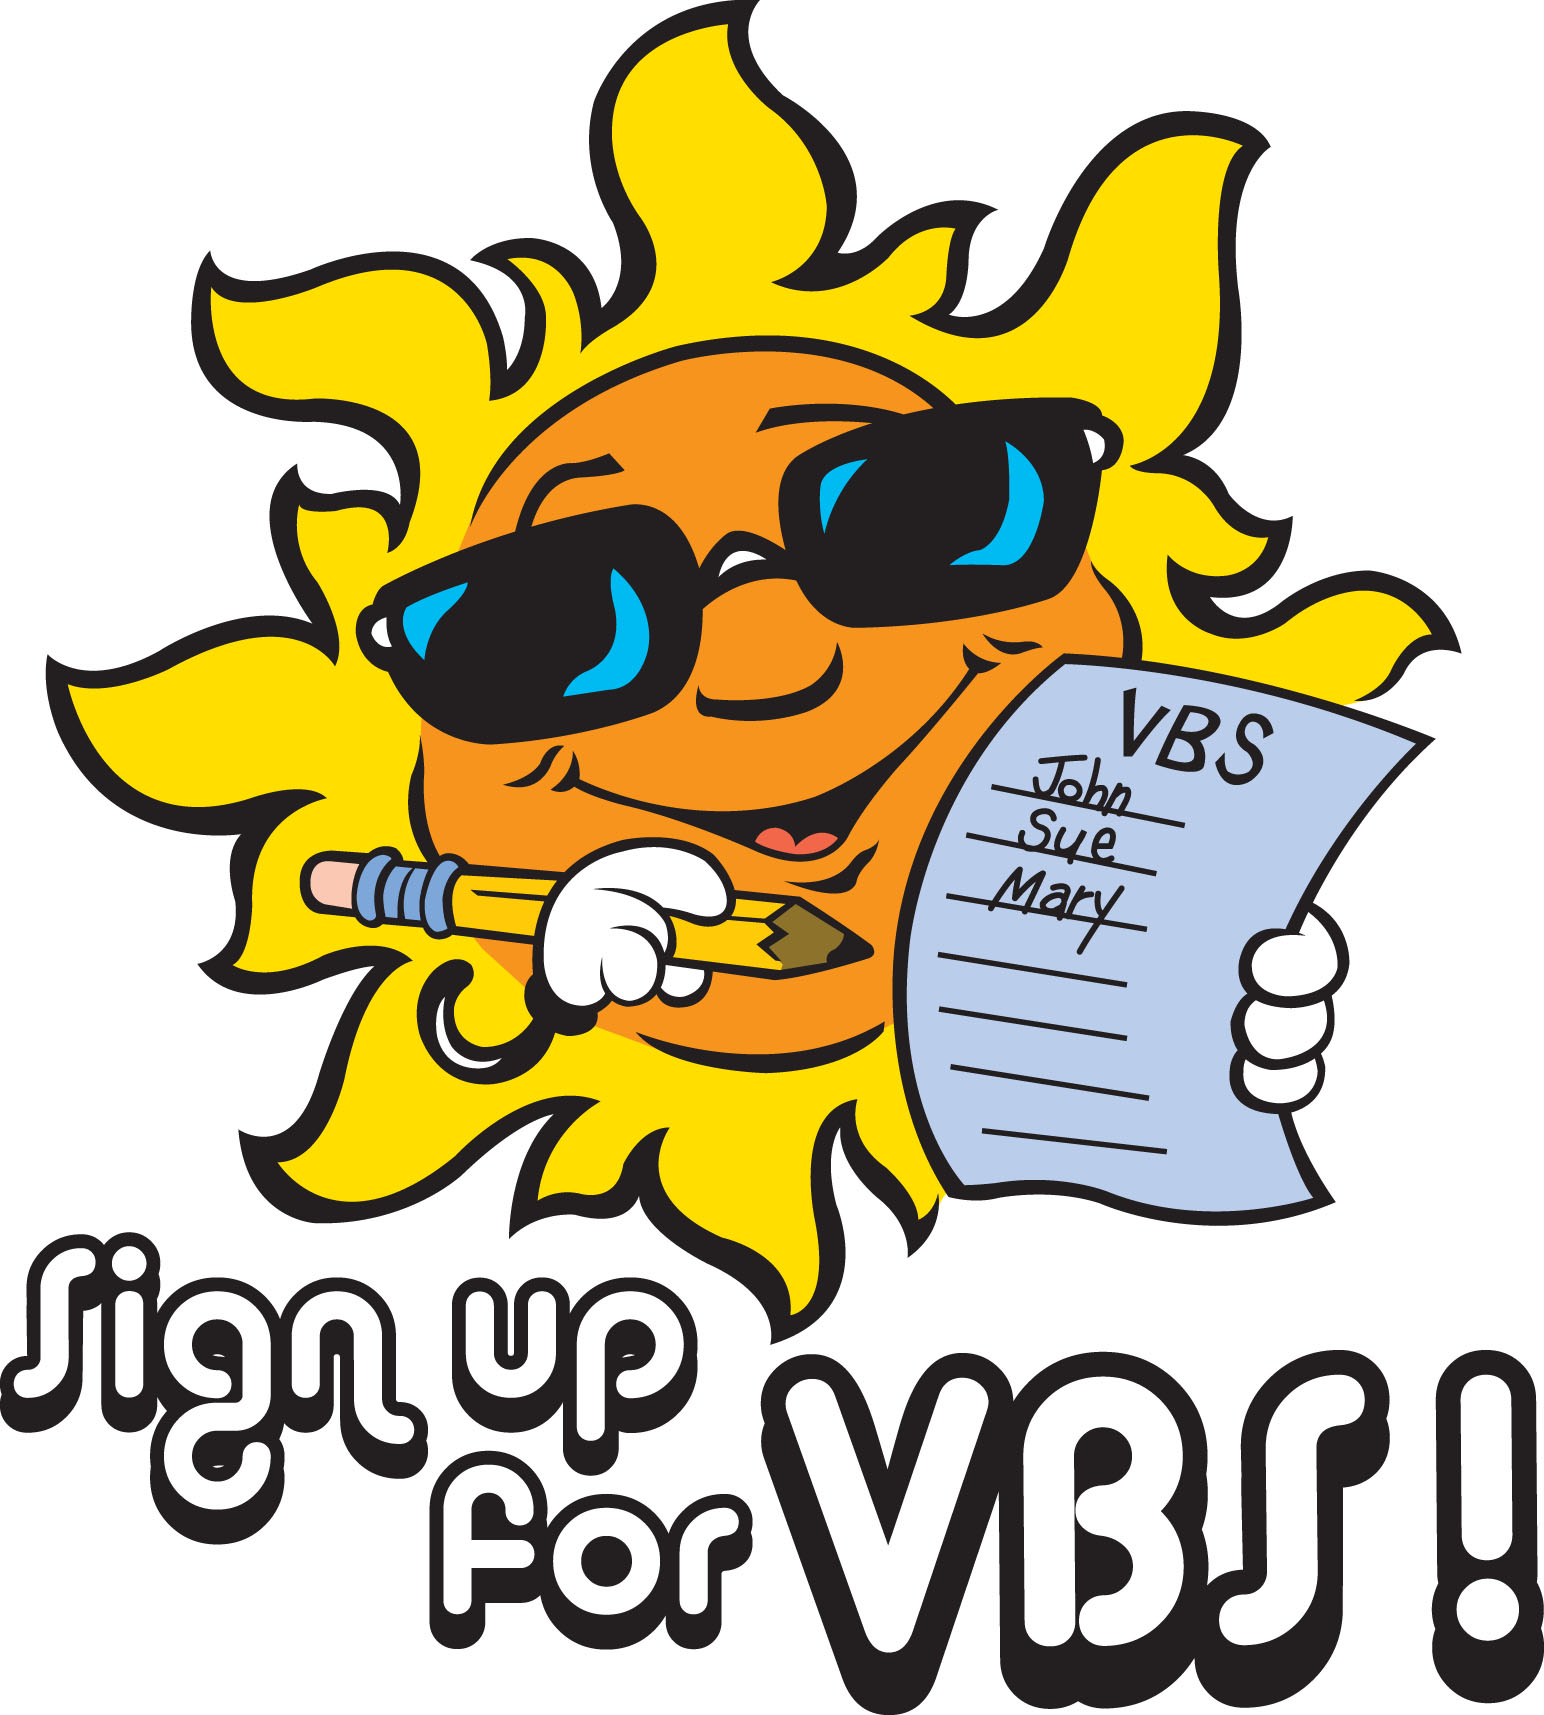 Clipart for vacation bible school image royalty free download Vbs Sign Up Clipart - Clipart Kid image royalty free download